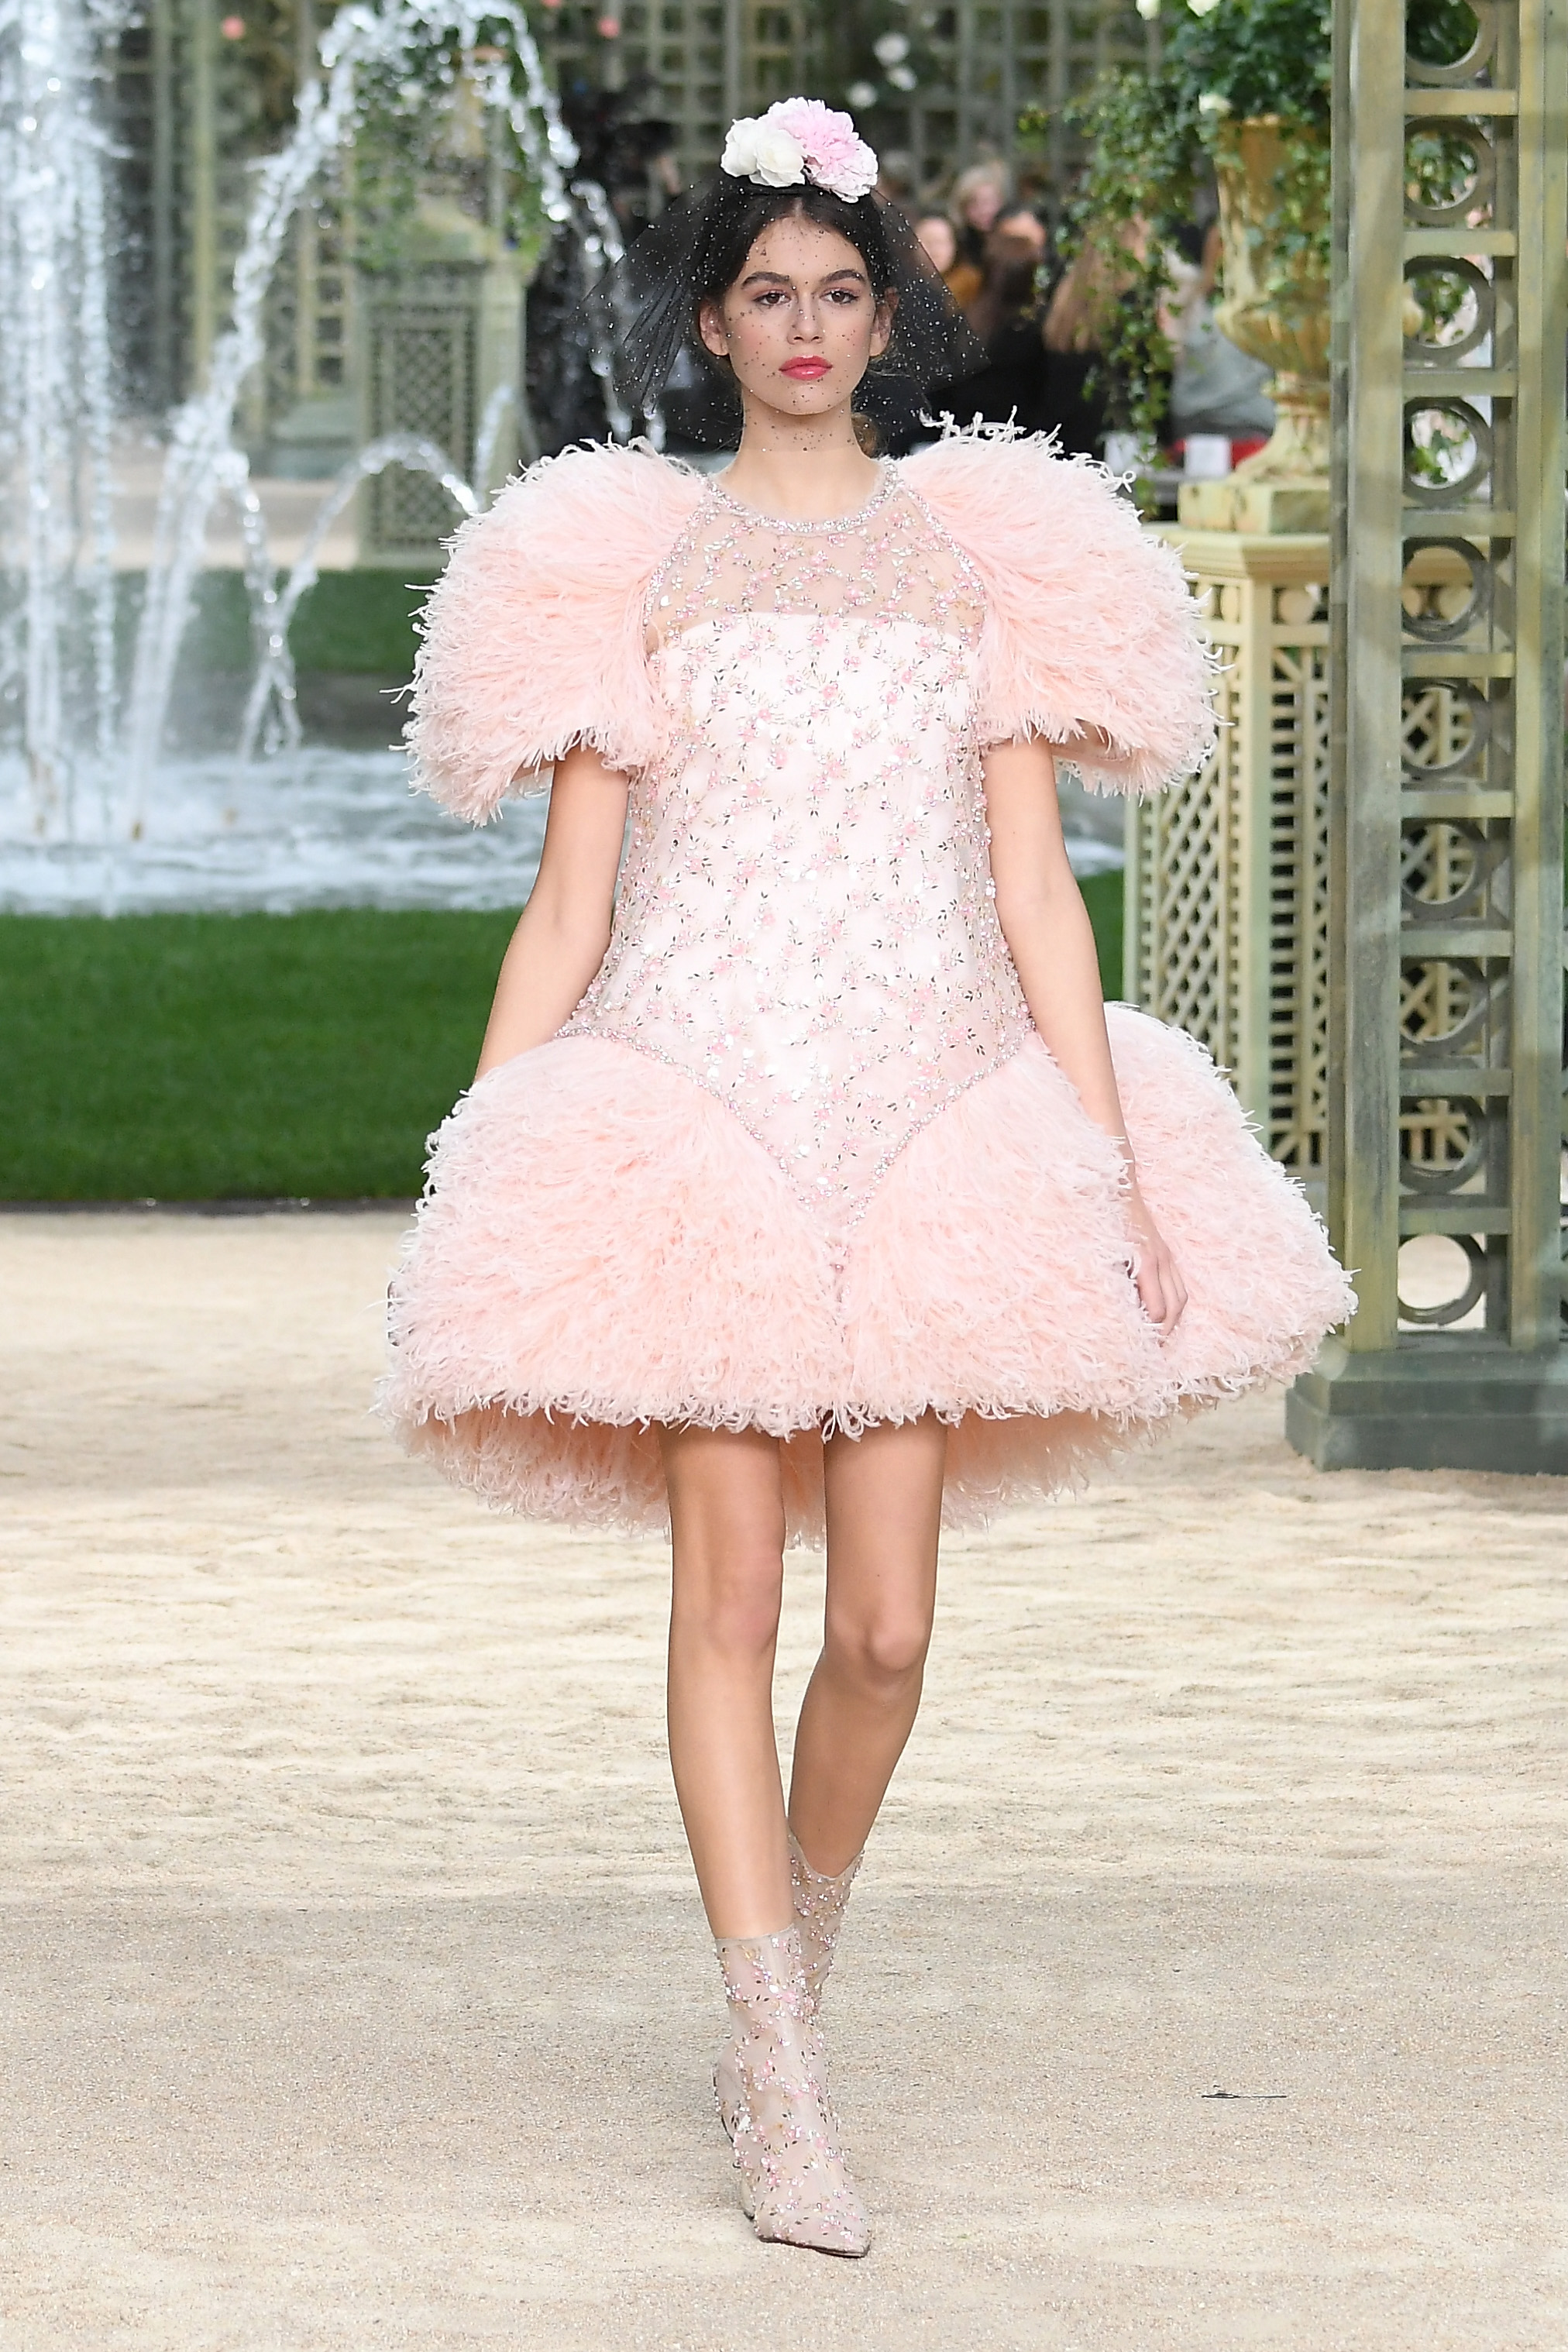 <p>The curtain has closed on the fashion extravaganza that is Paris Haute Couture Fashion Week. A week-long event where modern art and high fashion come together, this year's Spring/Summer shows were heavy on pastels, glamour and star power.</p> <p>Australian designer Kym Ellery debuted her first Haute Couture collection for her namesake label, having prepped her pieces before the show in an apartment that once belonged to Coco Chanel.</p> <p>Cindy Crawford's mini-mi daughter made her Couture debut in a dreamy gown for Chanel and Bella Hadid kept her cool on the runway at Alexandre Vauthier when she almost exposed more of herself than expected.</p> <p>But the fashion amazement didn't stop there with the world's most-admired designers revealing incredible new pieces that we'll likely be talking about for decades to come. </p> <p>Here, some of the most memorable moments of Paris Haute Couture Fashion Week Spring/Summer '18.</p>